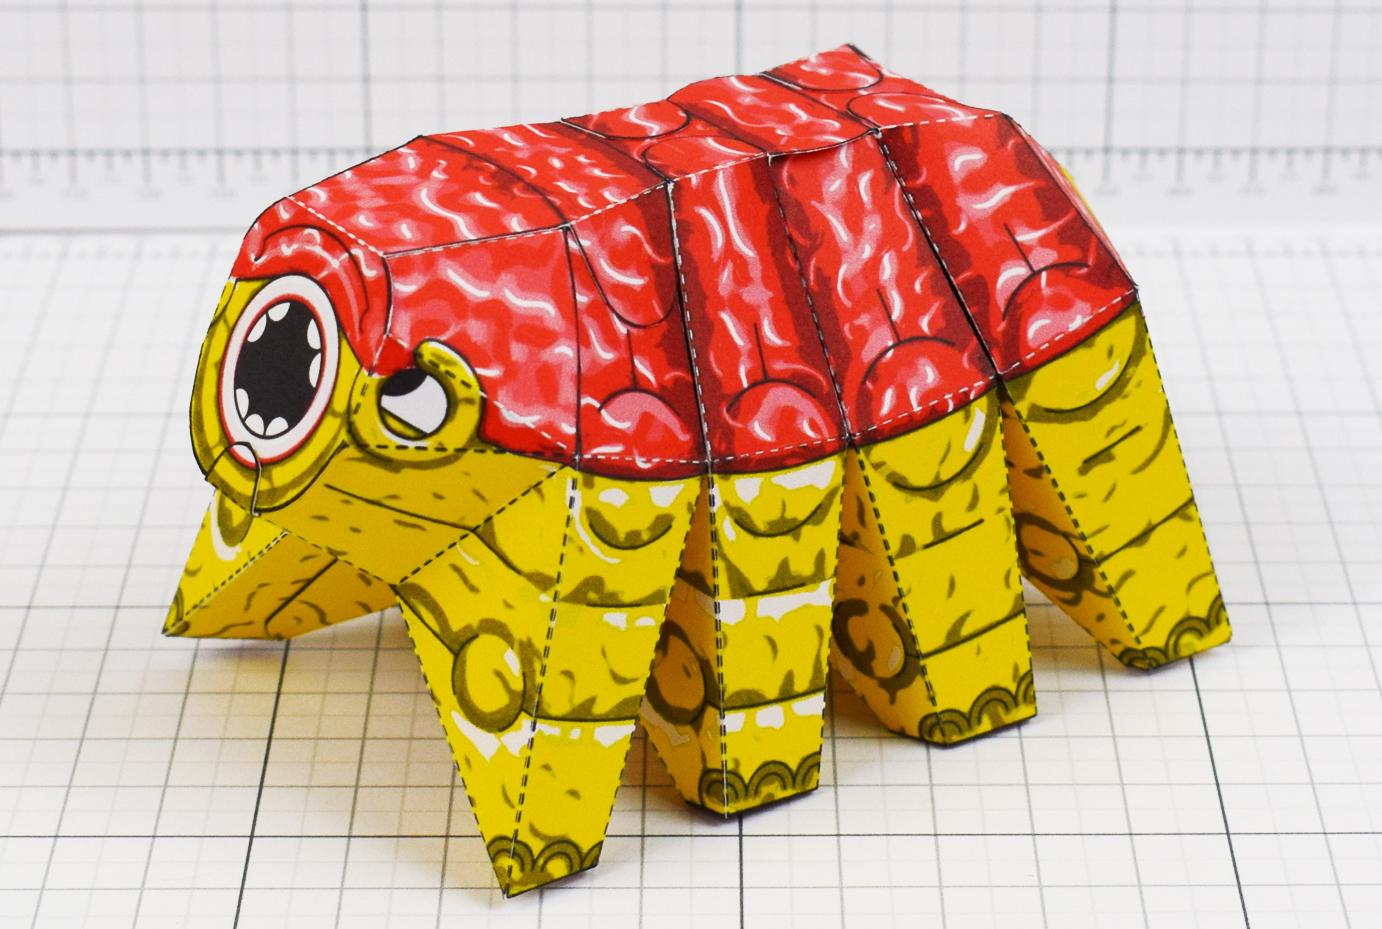 PTI - Squishy Brain Beast Monster Alien Paper Toy Image - Main